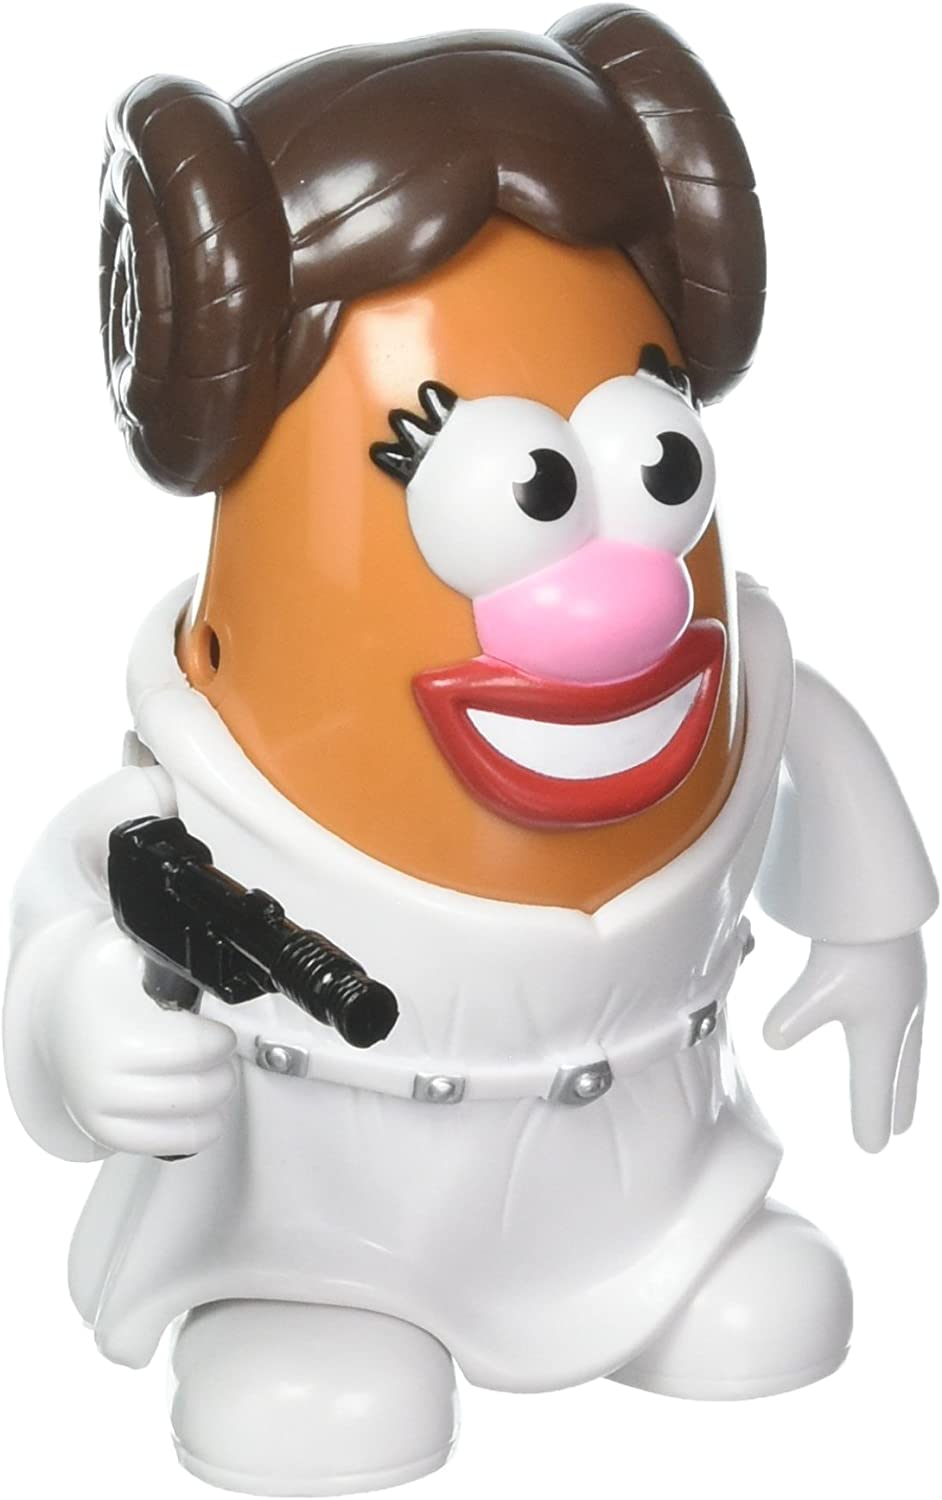 Star Wars Princess Leia (Classic) Mrs. Potato Head PopTater ...